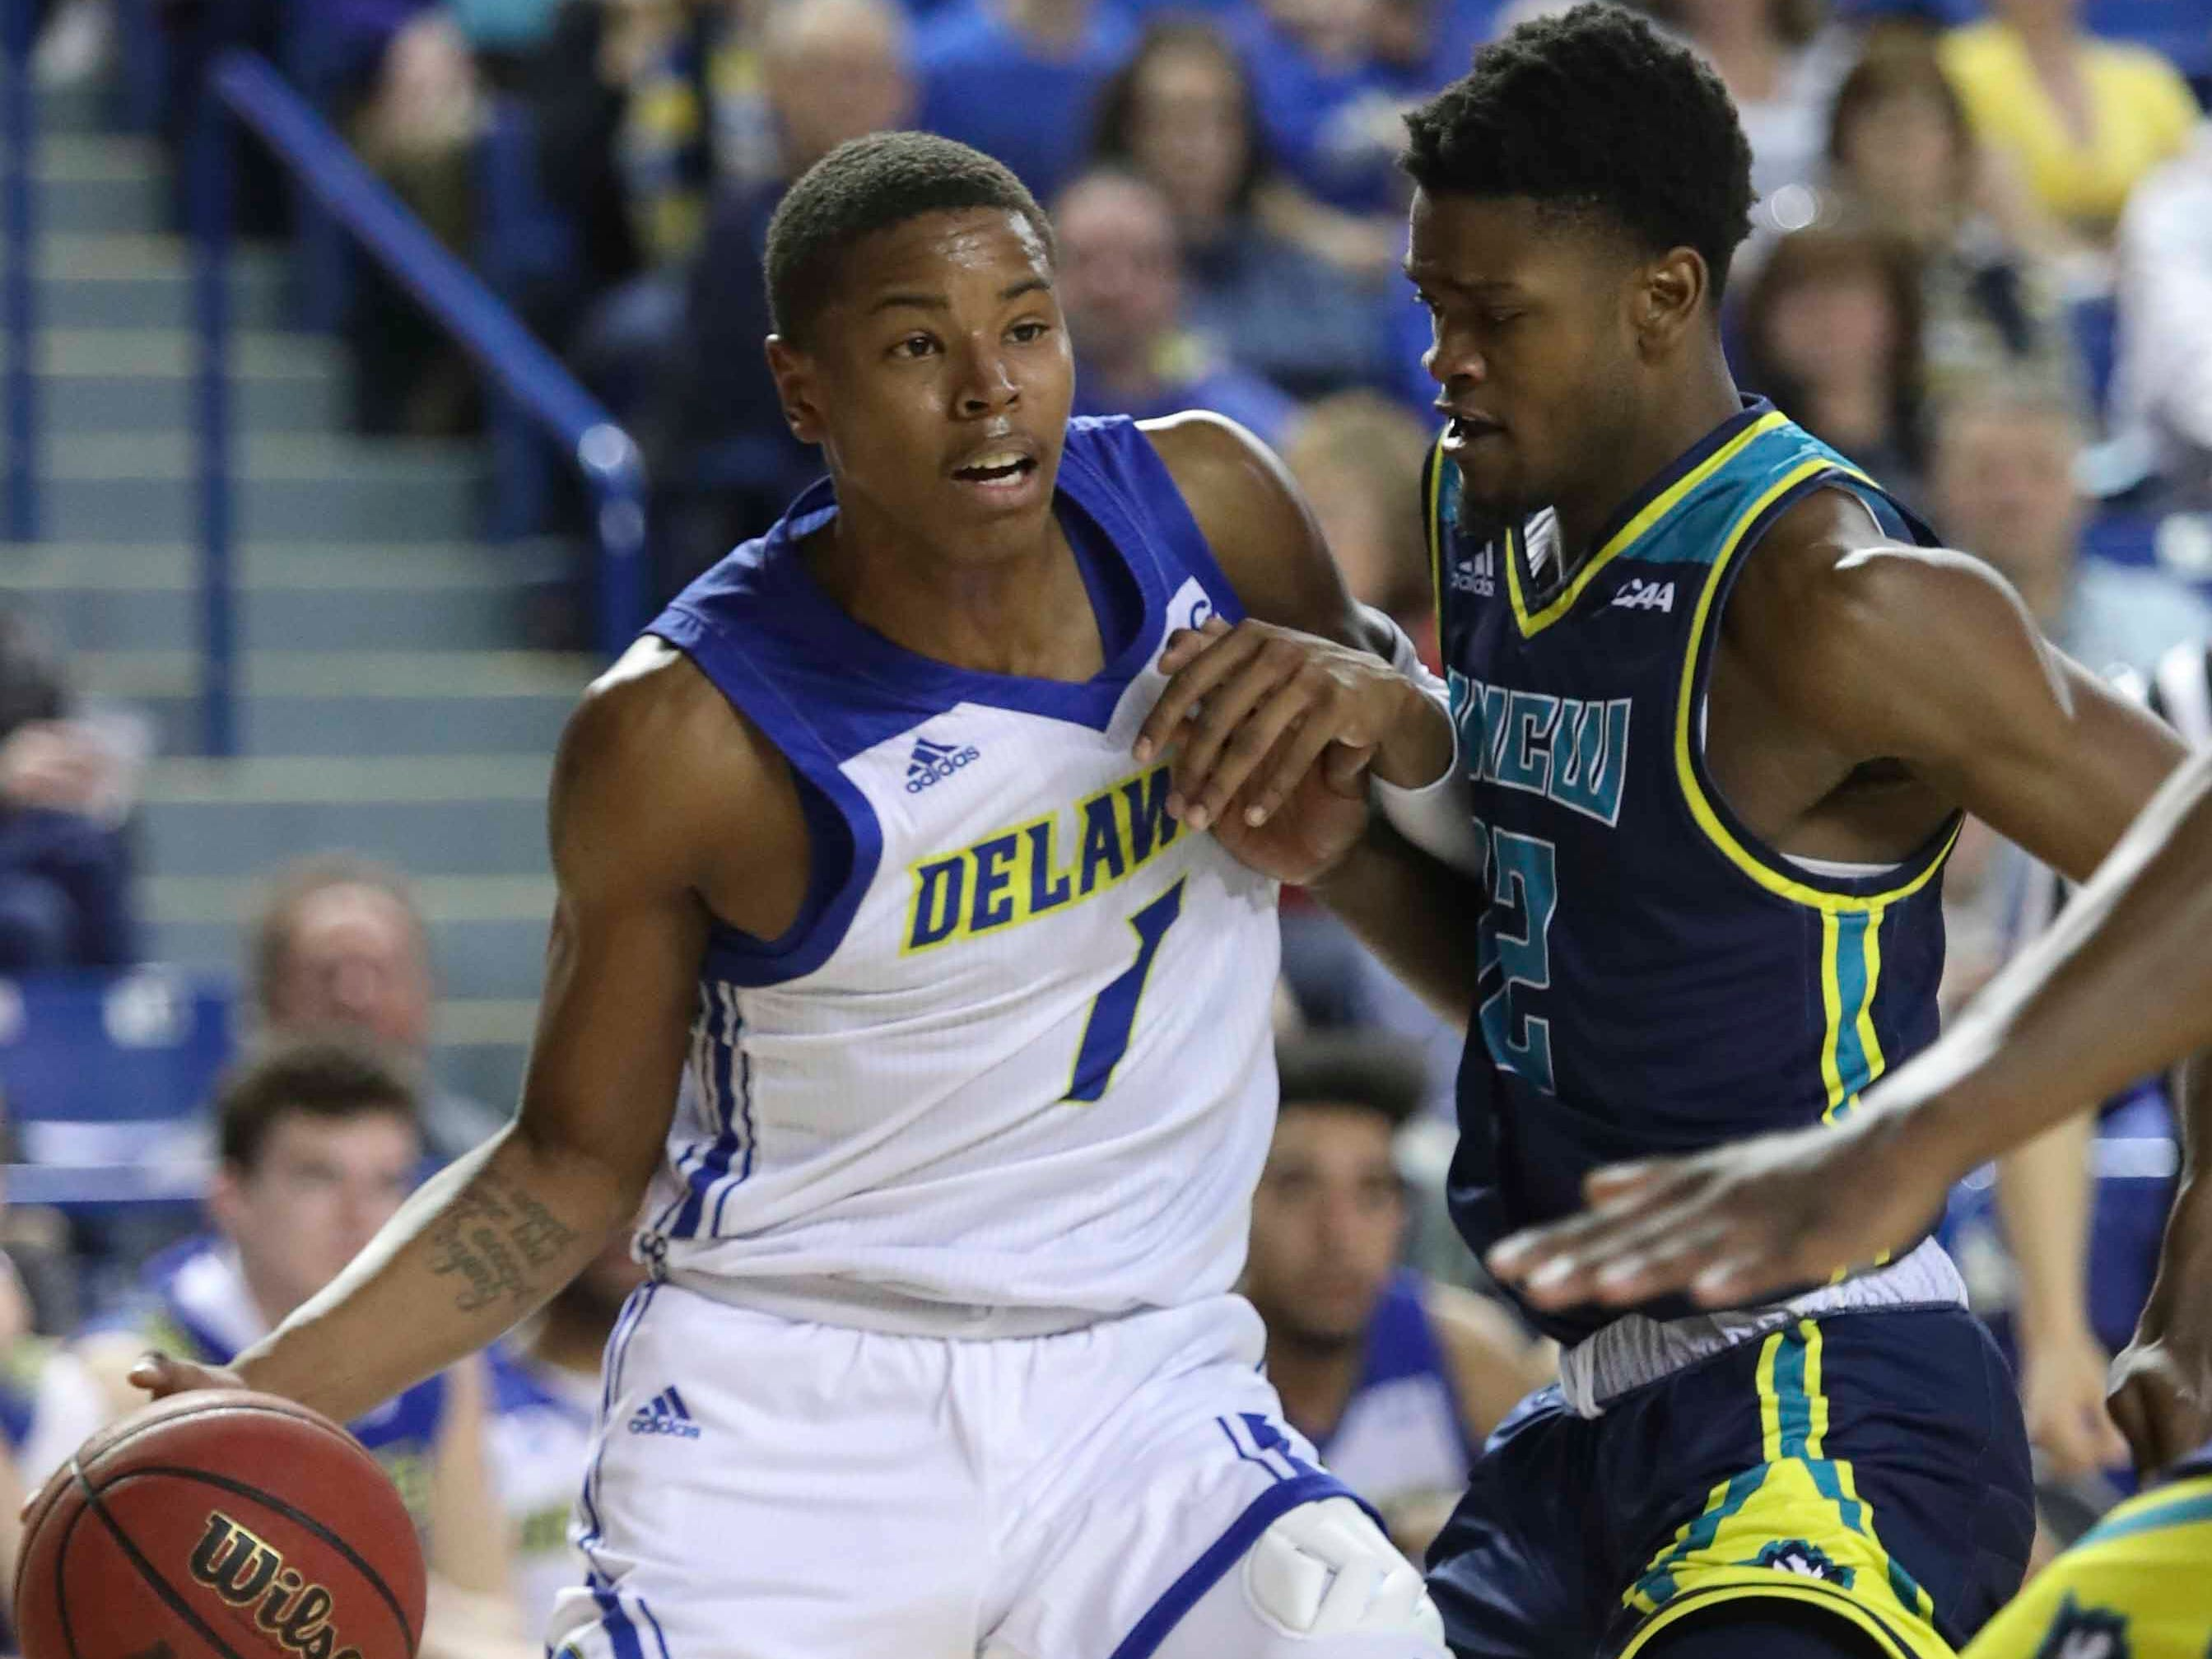 Delaware' Kevin Anderson (1) is fouled on a drive by UNC-Wilmington's Jay Estime' in the second half of Delaware's 70-66 win at the Bob Carpenter Center Saturday.